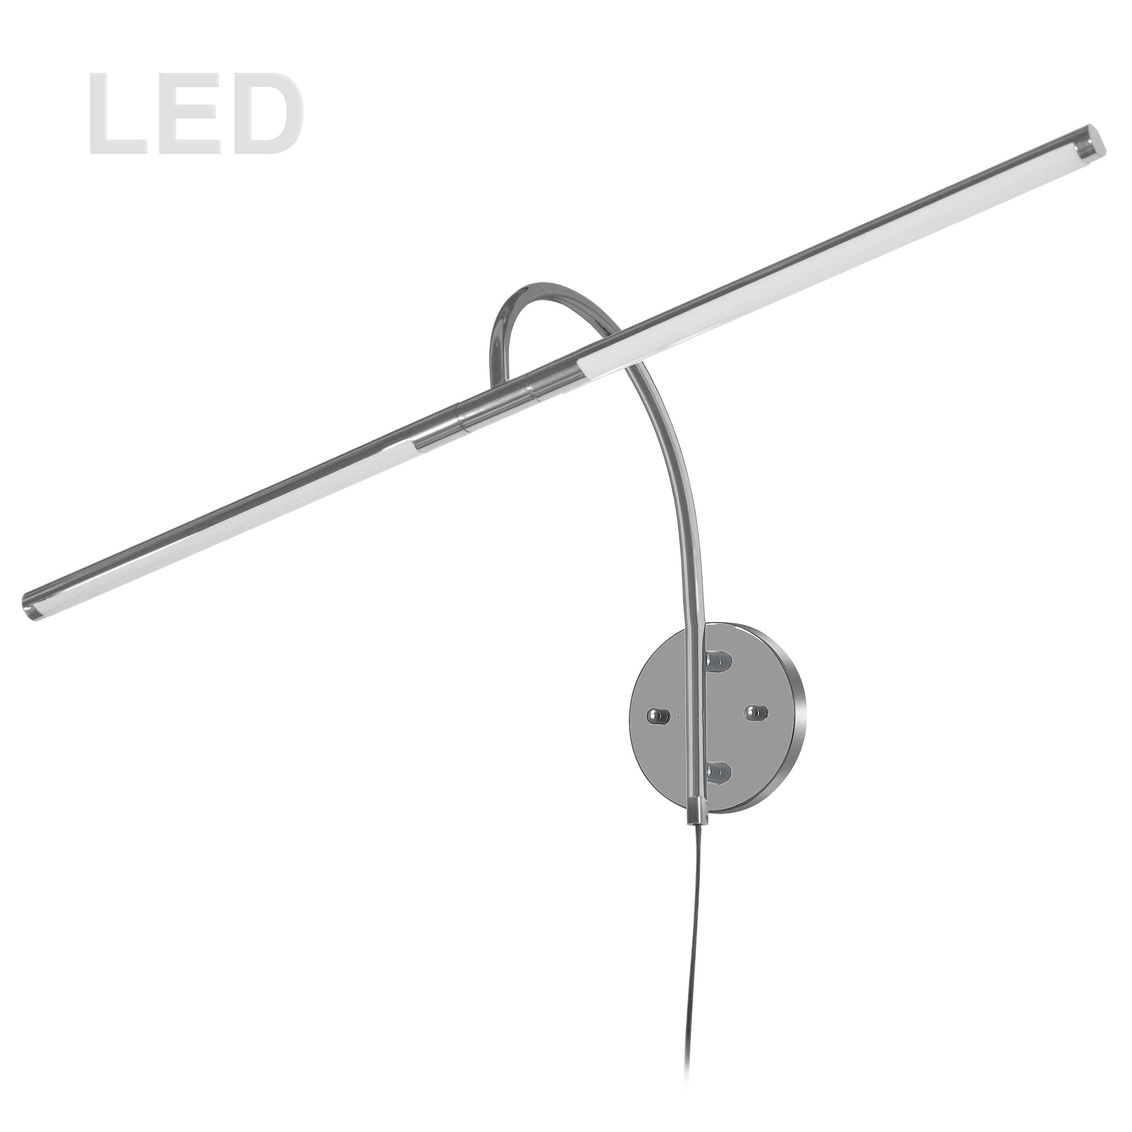 LED PICTURE LIGHT, PICLED-XXX-XX